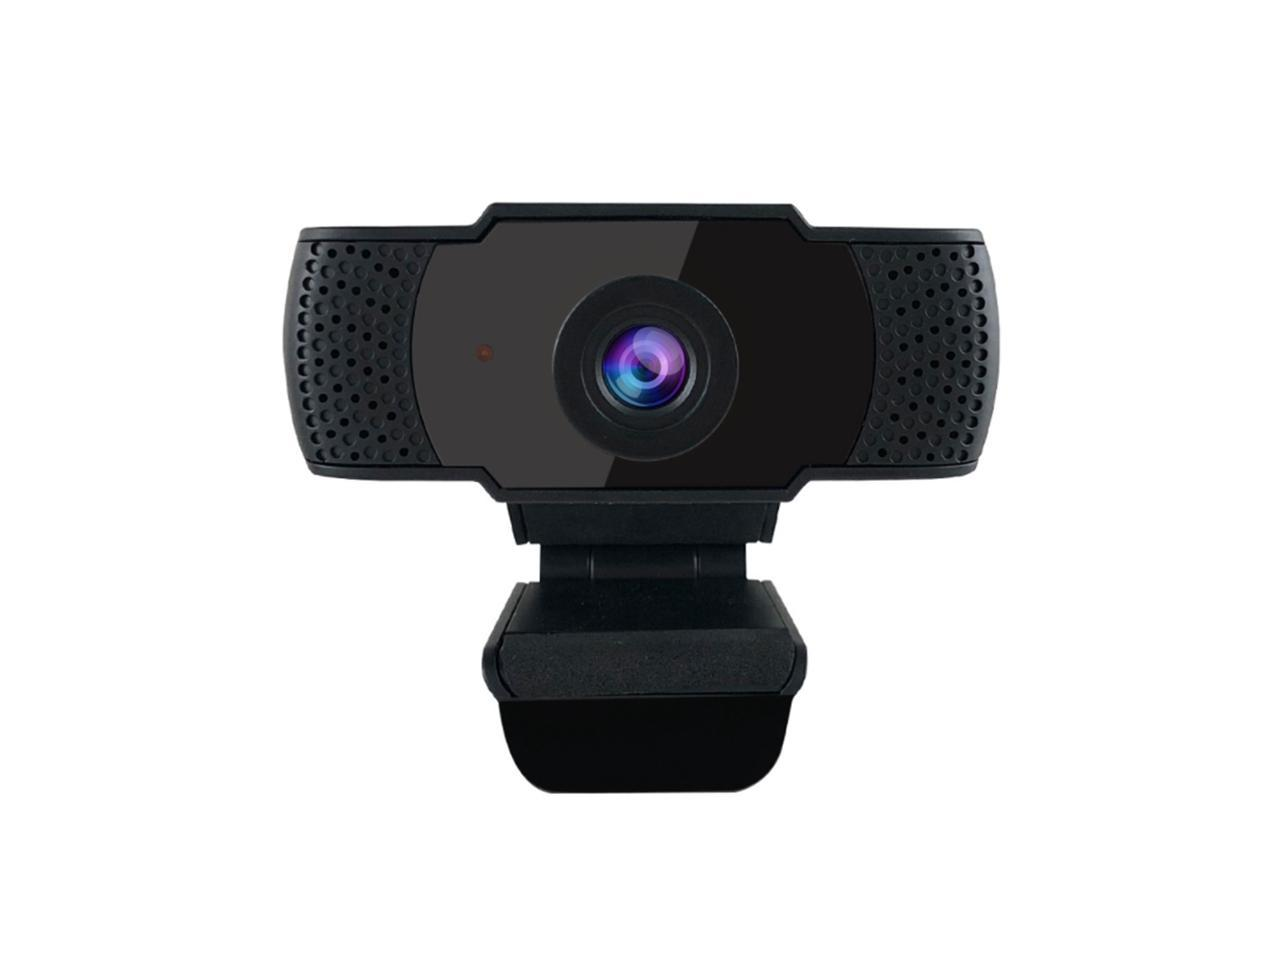 Black 1080P Webcam with Microphone,HD Web Camera for Video Conferencing,USB Webcams with Built-in Dual Microphone for Laptop or Desktop,110-Degree Widescreen,360/° Rotate